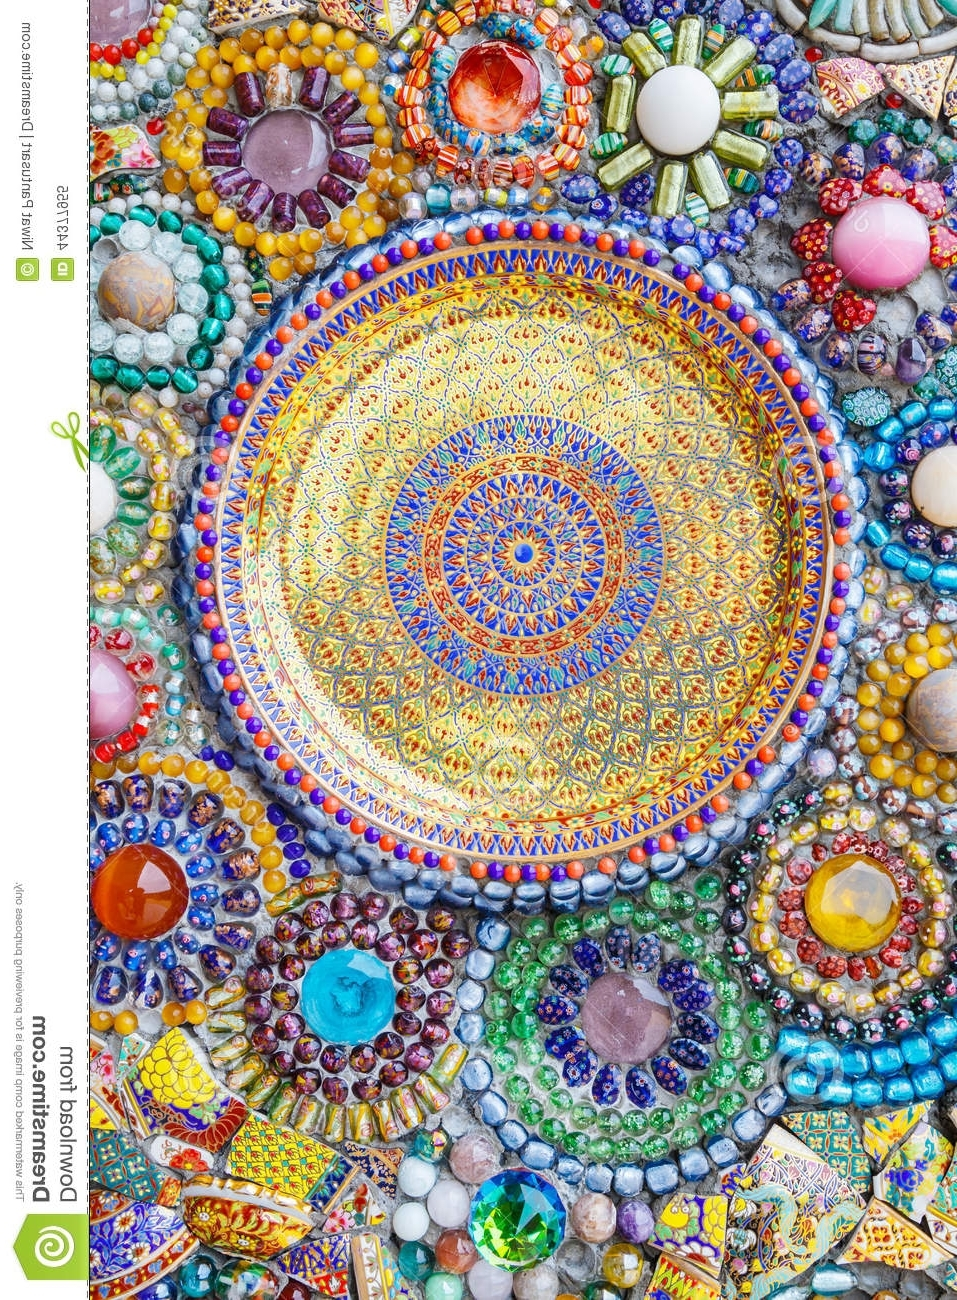 Well Known Abstract Mosaic Wall Art Inside Colorful Mosaic Art Abstract Wall Background Stock Image – Image (View 15 of 15)